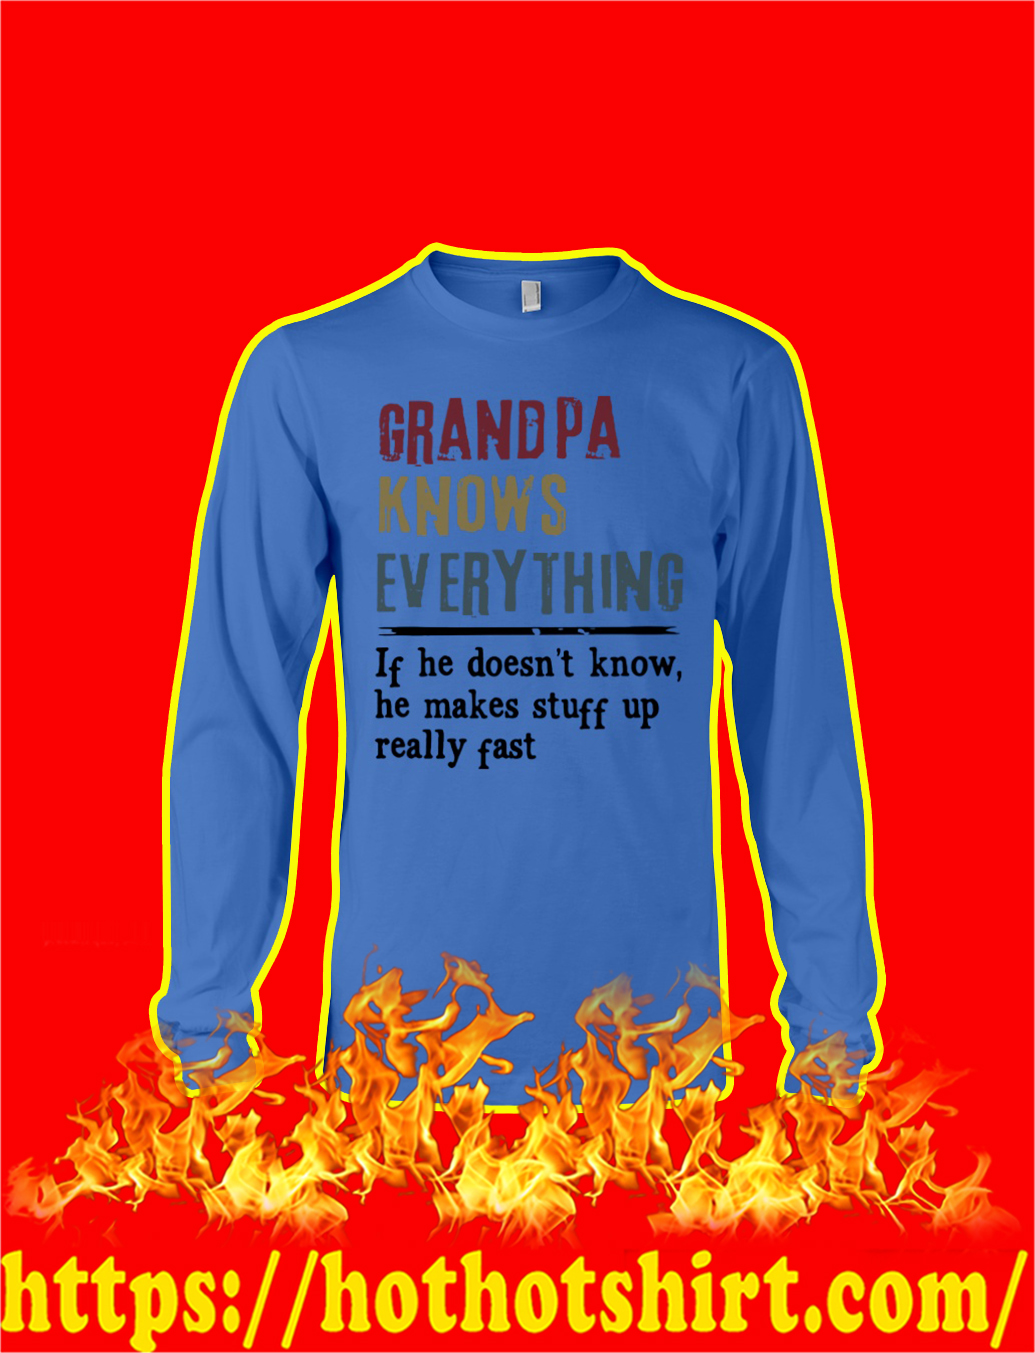 Grandpa Knows Everything If He Doesn't Know He Make Stuff Up Really Fast longsleeve tee